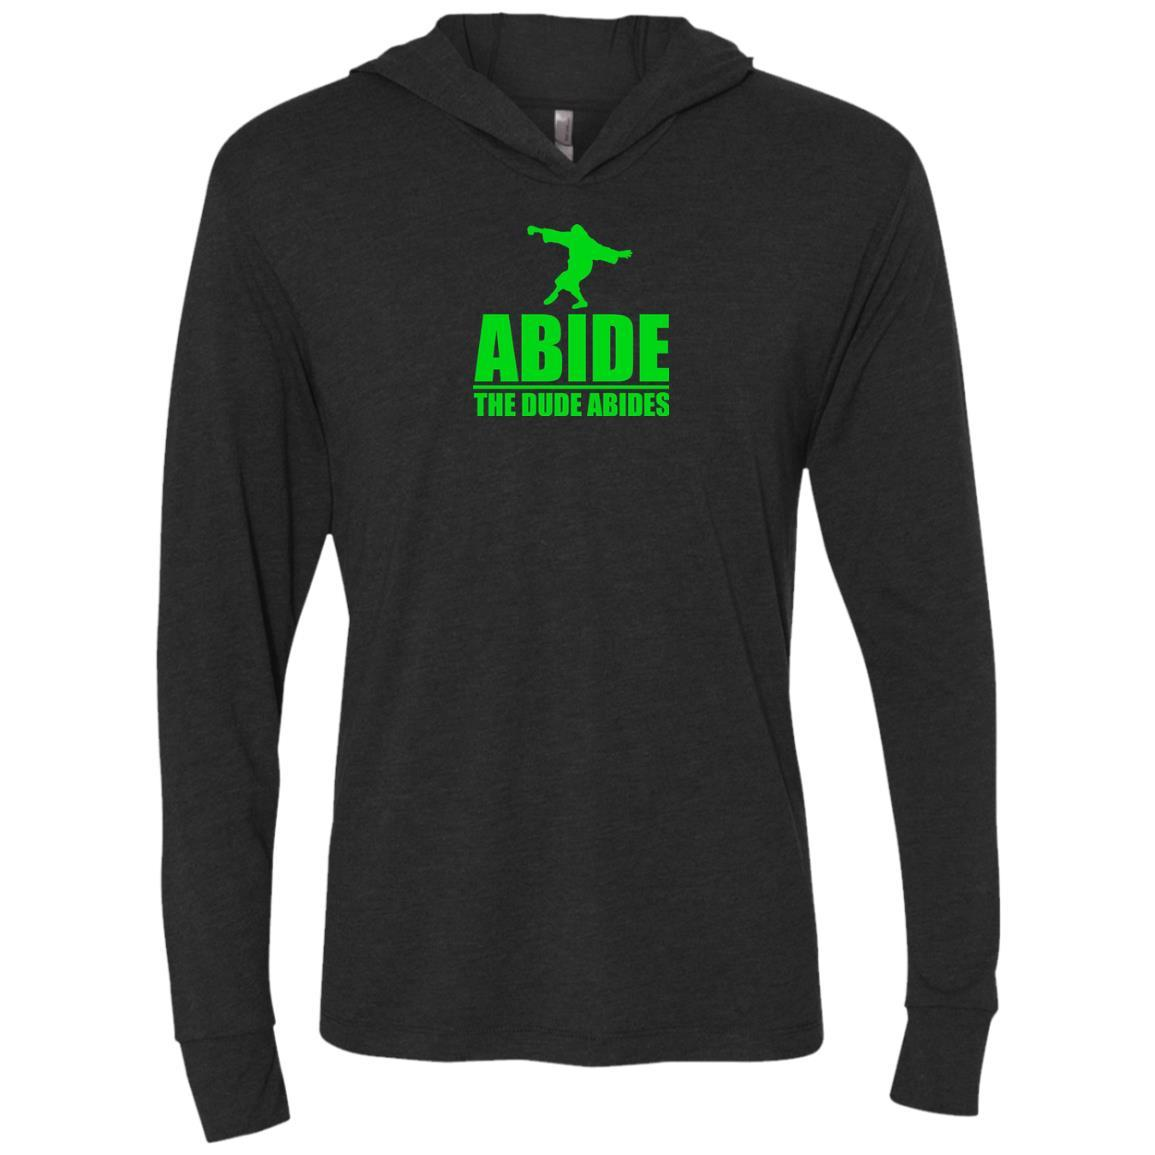 T-Shirts - The Dude Abides Premium Light Hoodie